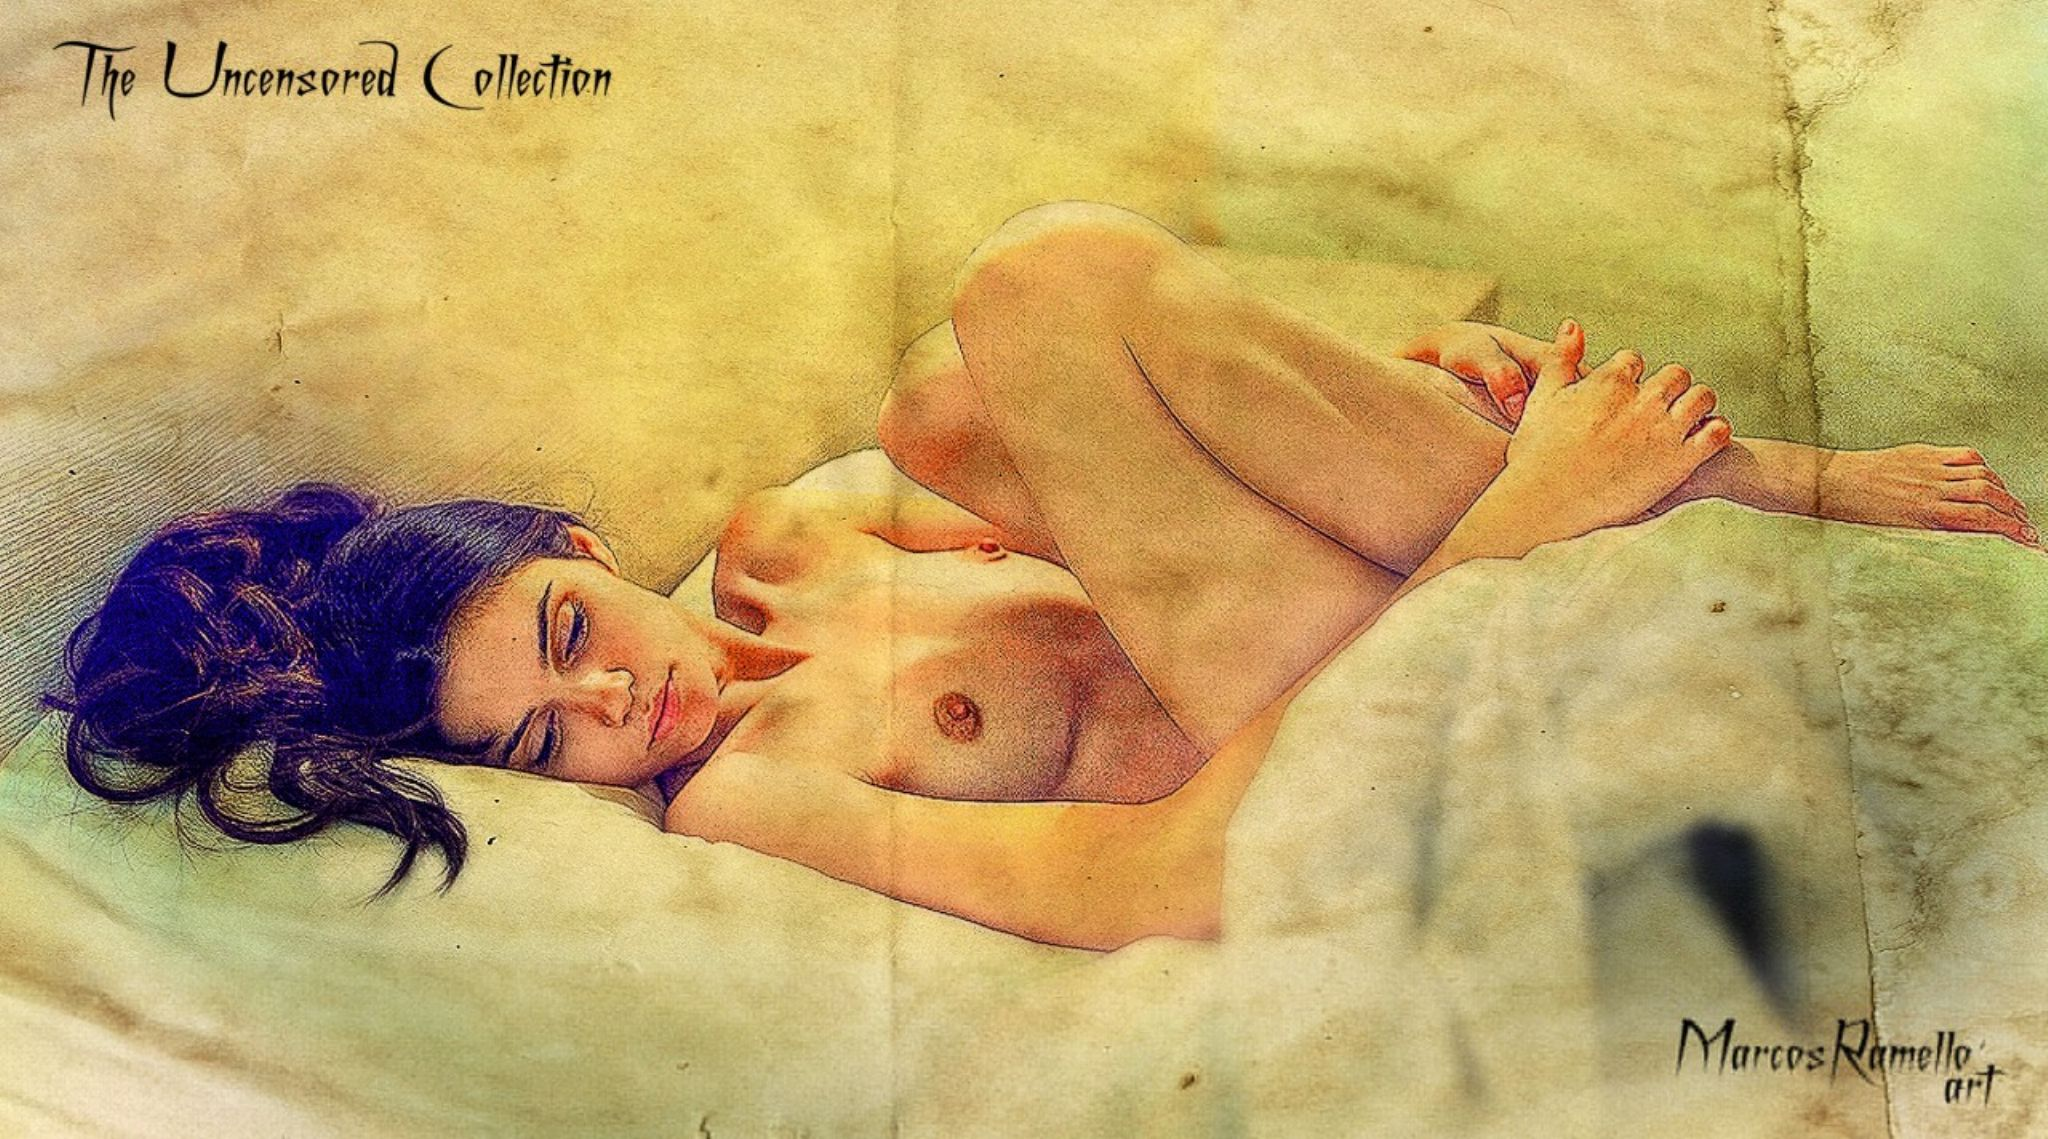 The Uncensored Collection (3) by Marcos Ramello